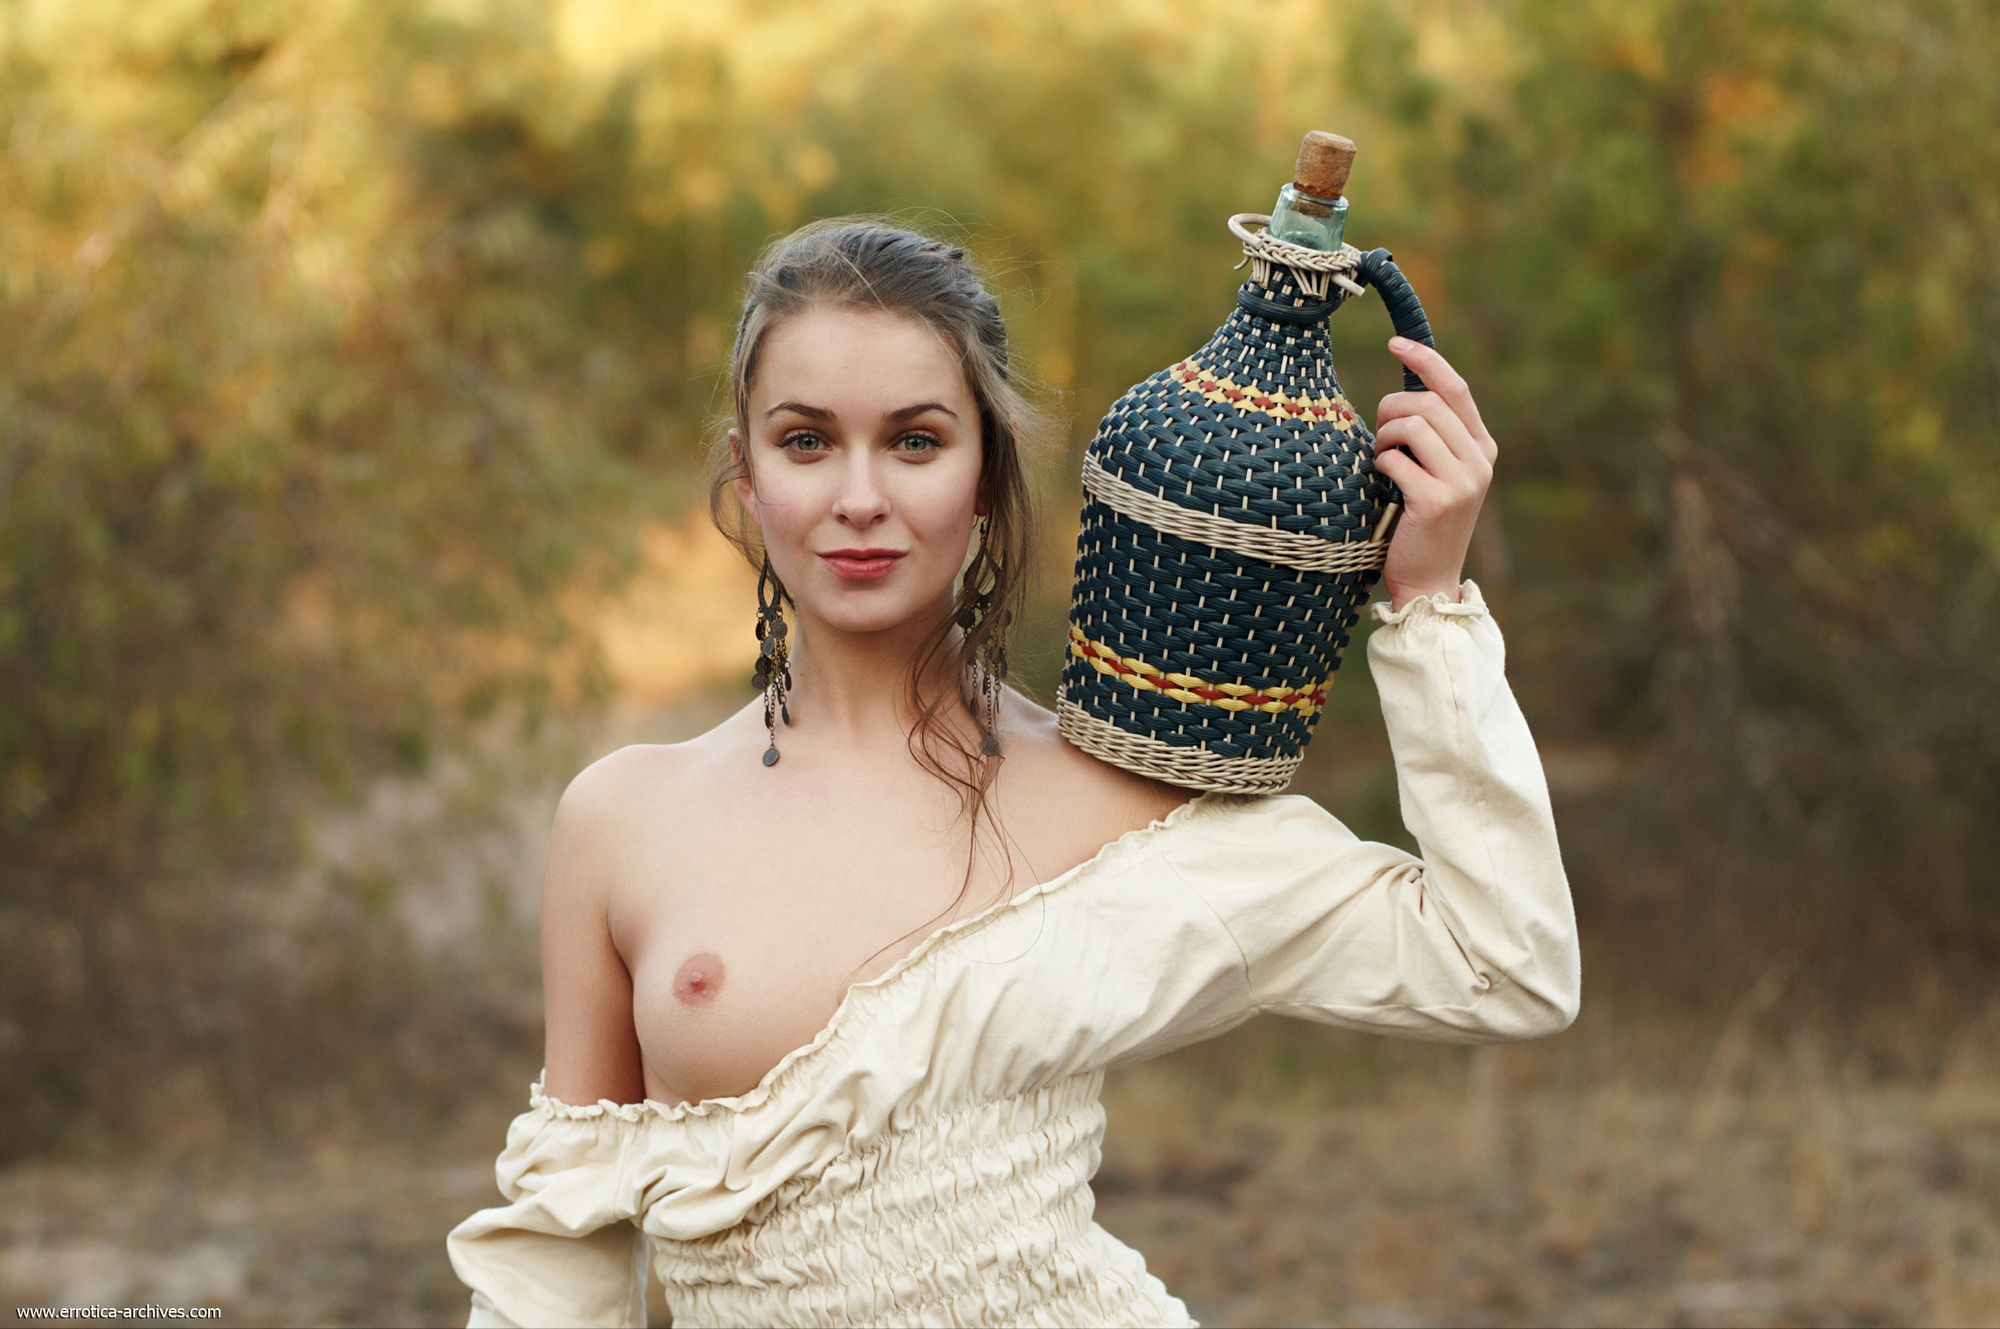 milana-naked-jug-wine-grapes-outdoor-errotica-archives-02